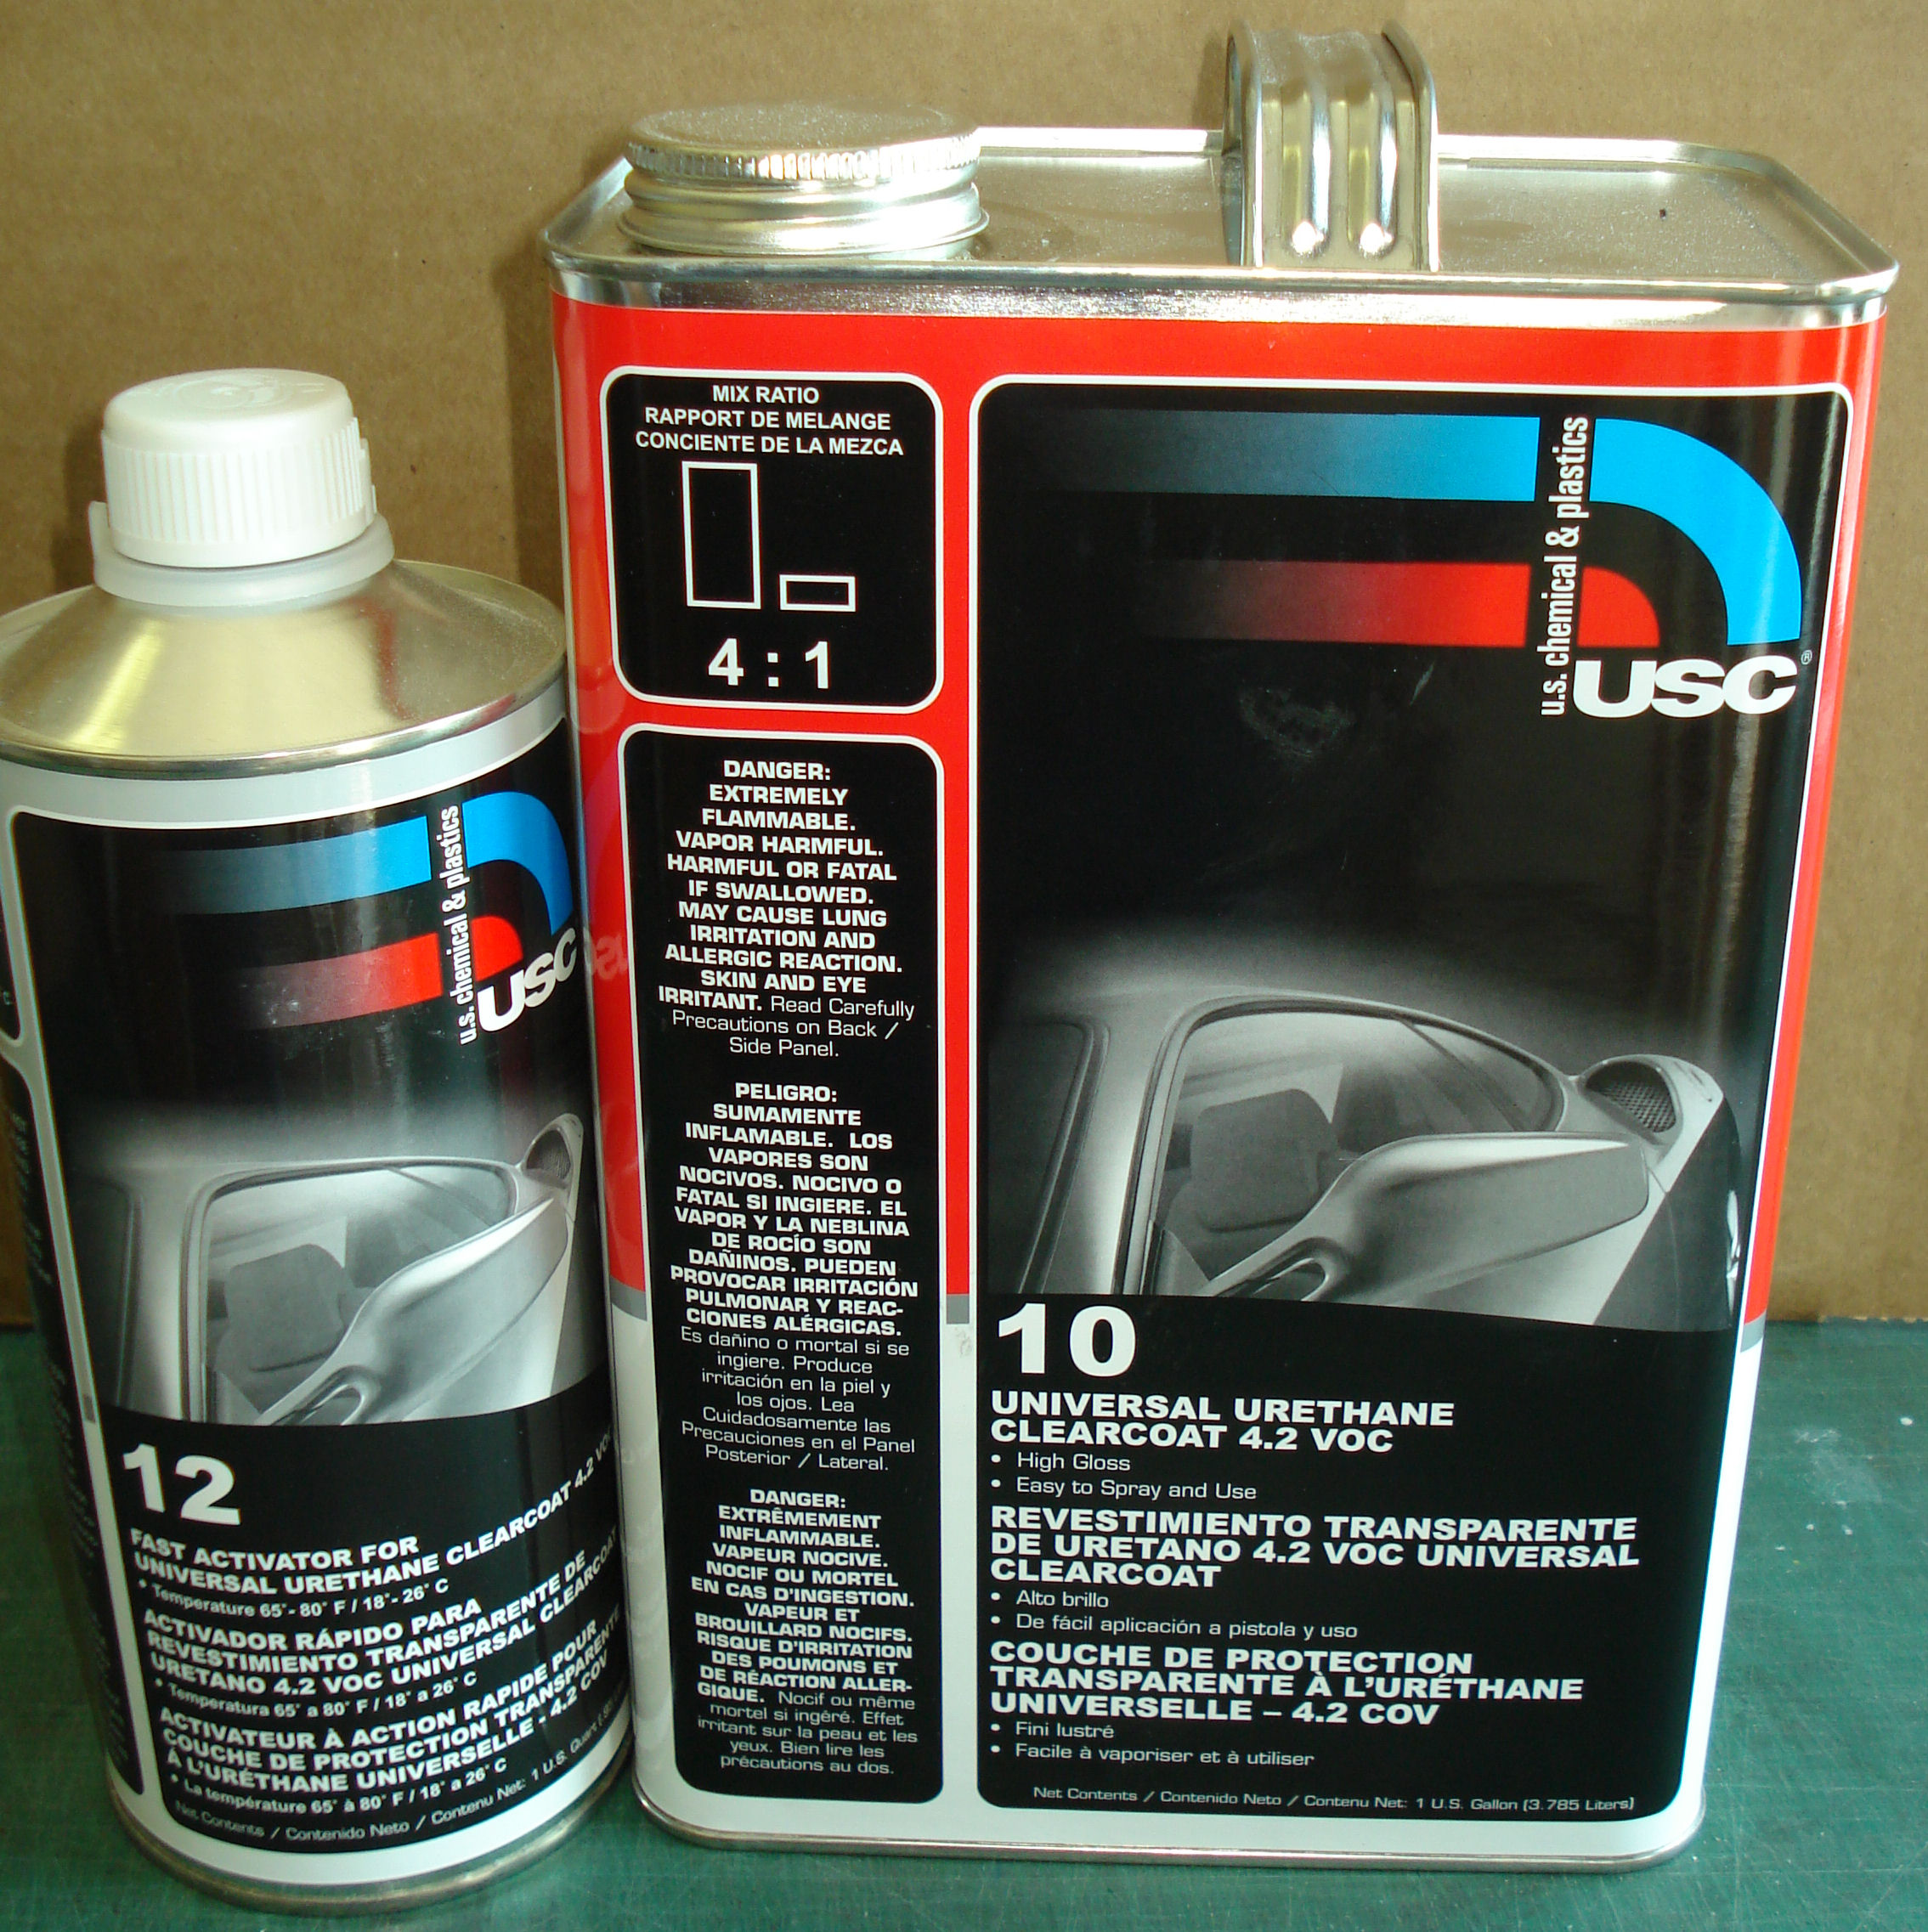 USC 10 Universal Urethane Clear Coat 4.2 VOC Kit